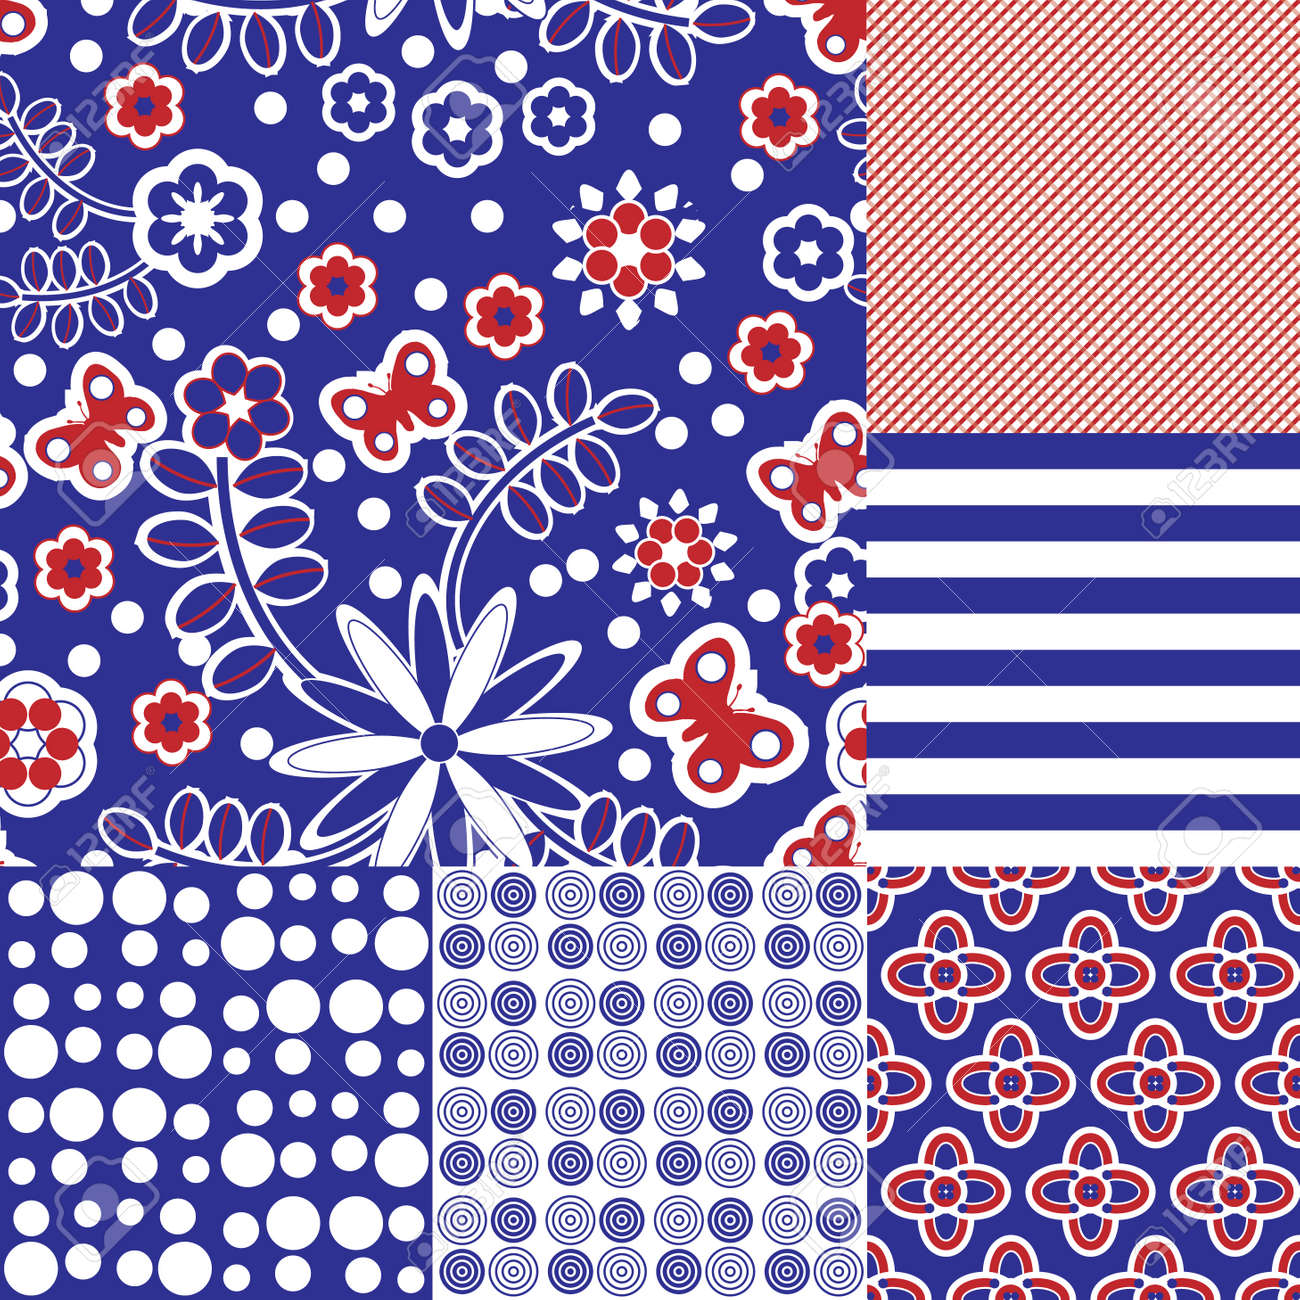 Six seamless tilable repeat patterns in blue, red and white Stock Vector - 7026857